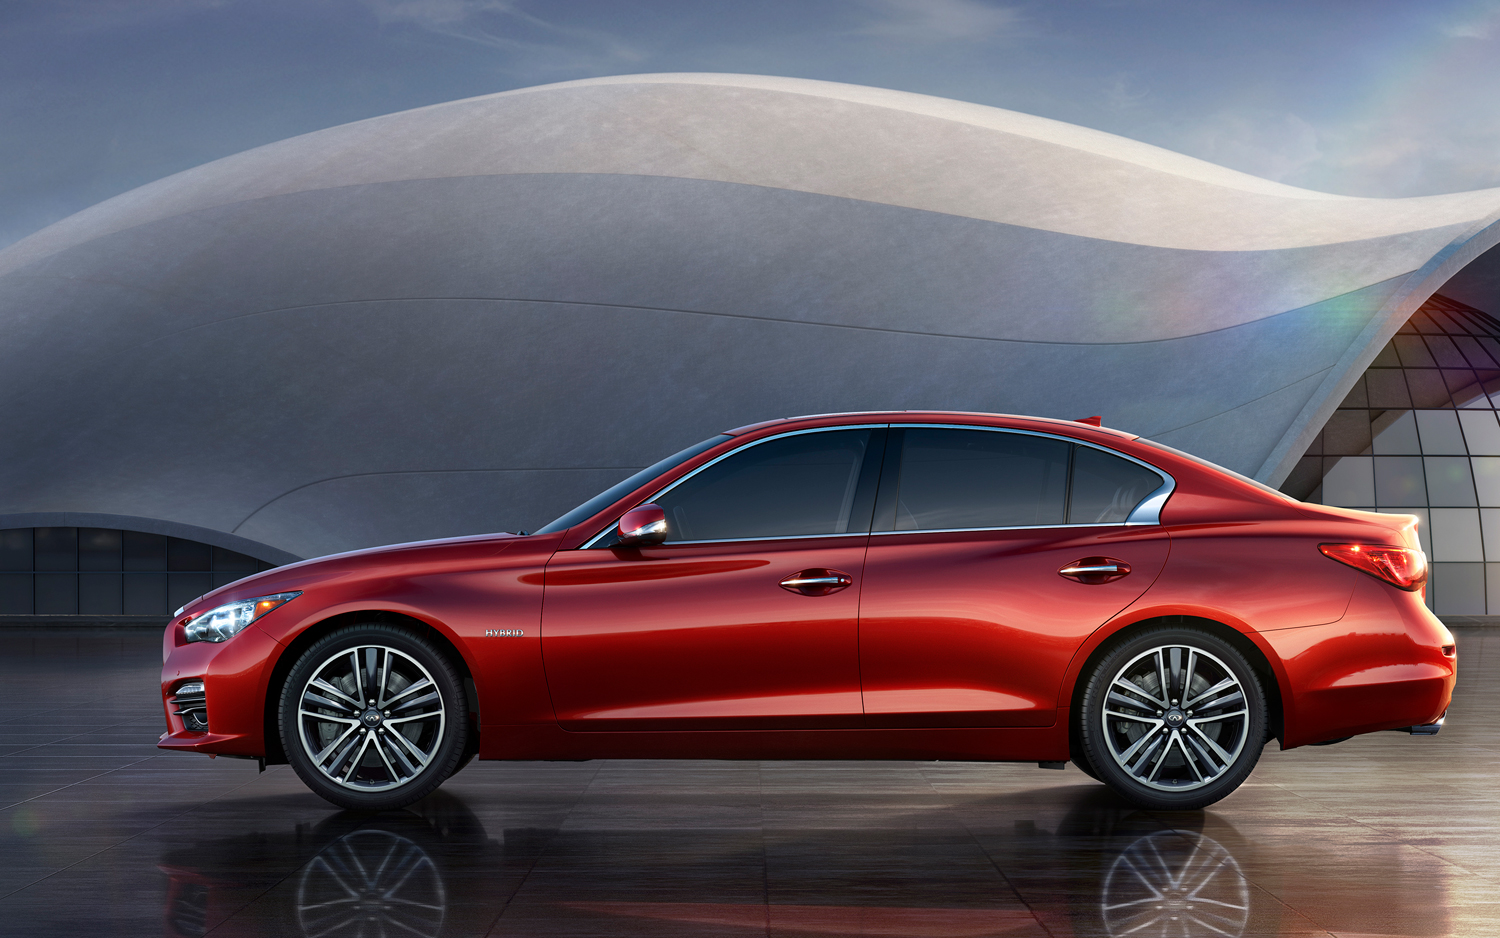 First Look 2014 Infiniti Q50 New Cars Reviews Sedan - Medium